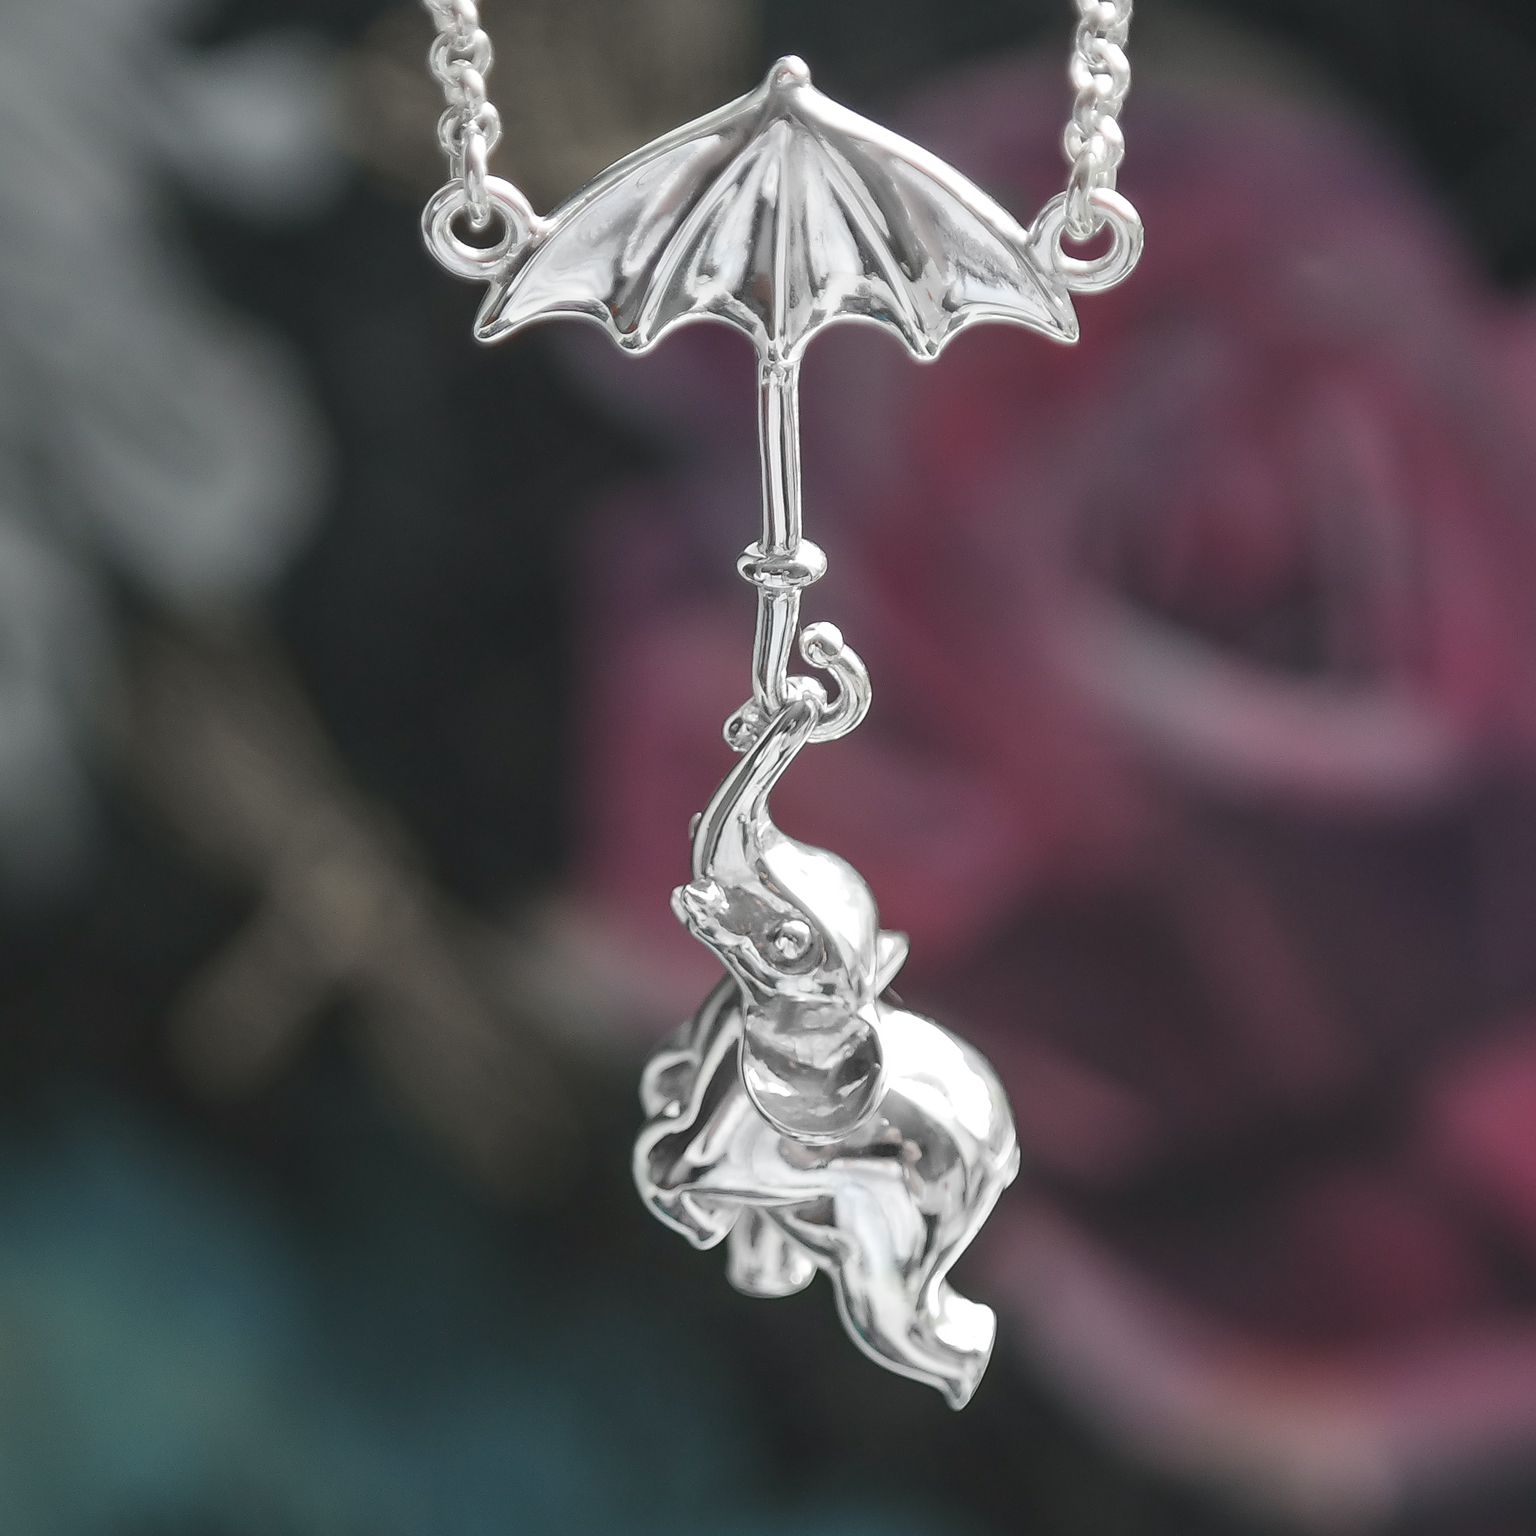 Sterling silver elephant hanging from umbrella necklace